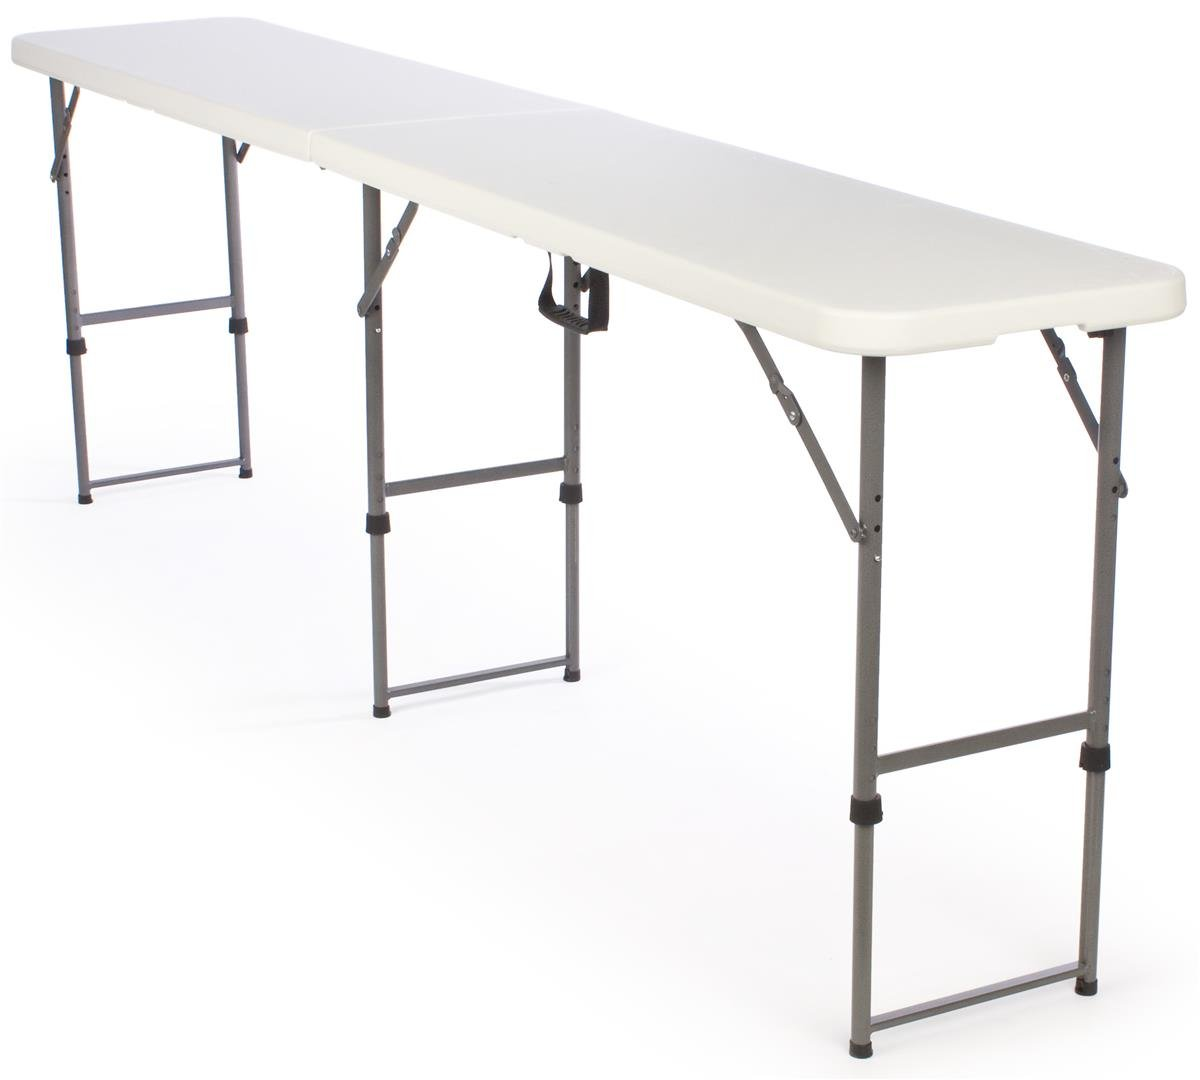 Amazon.com: Adjustable Height Folding Tables Are Portable And Can Be  Adjusted To 3 Separate Heights: Office Products